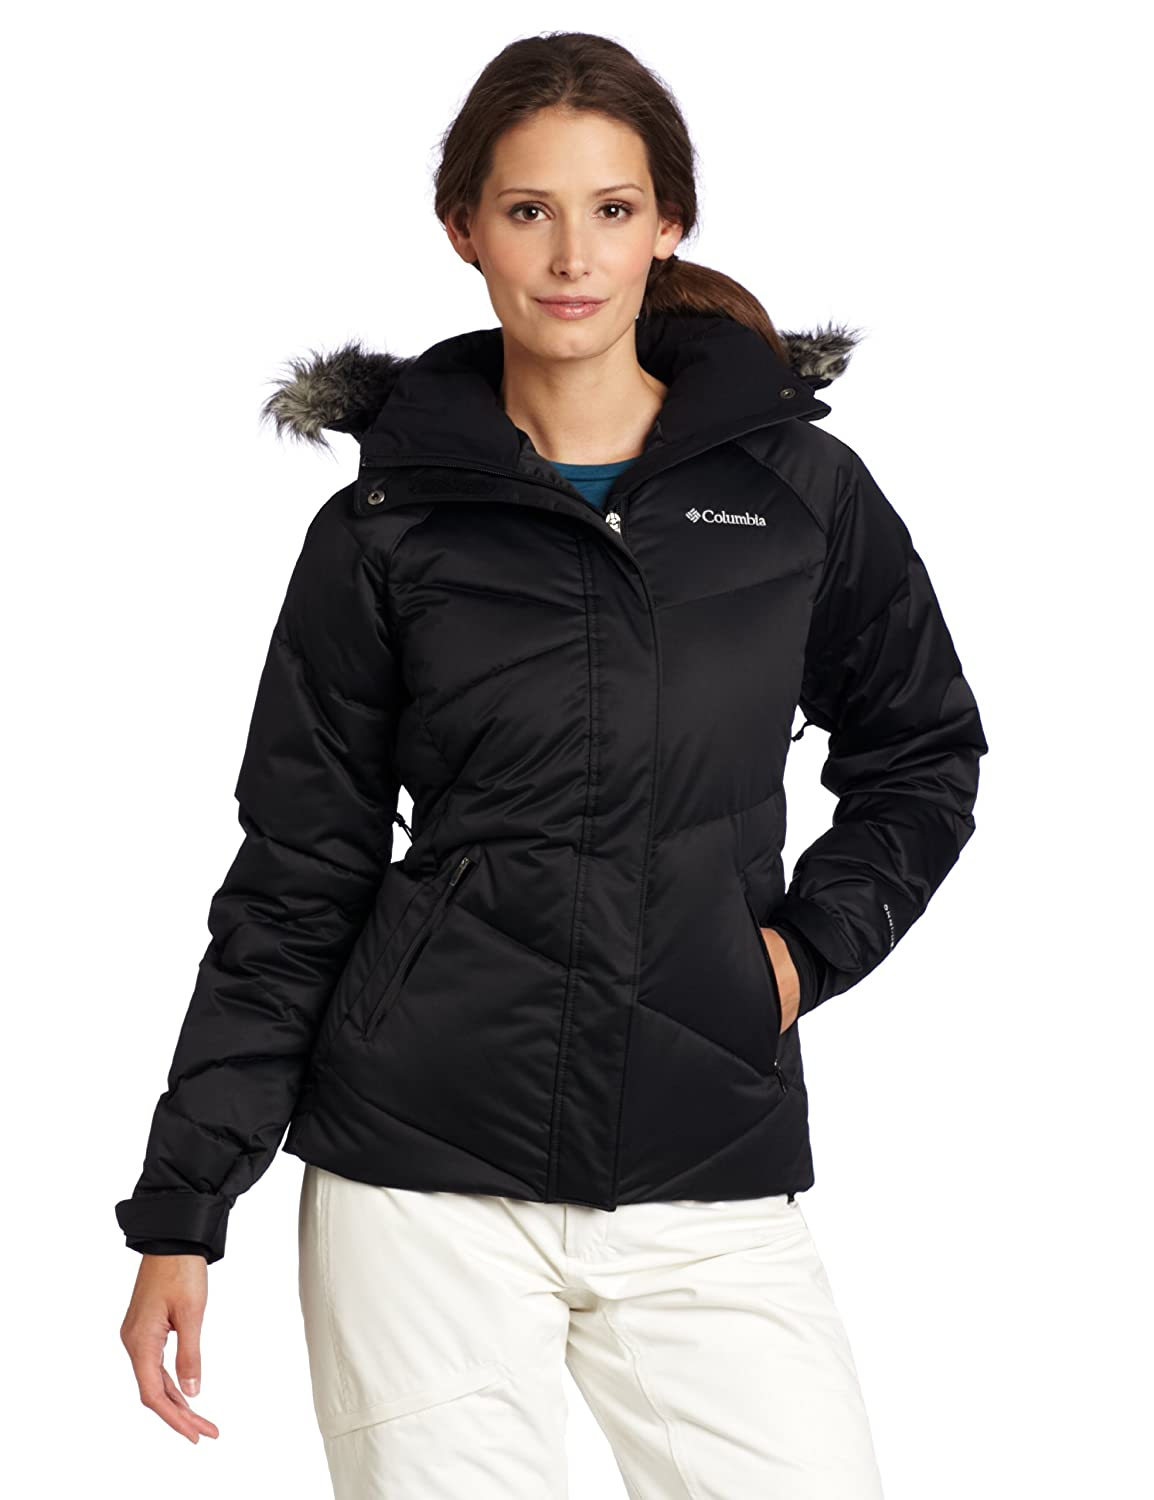 Columbia Damen Jacke Lay D Down Jacket online kaufen